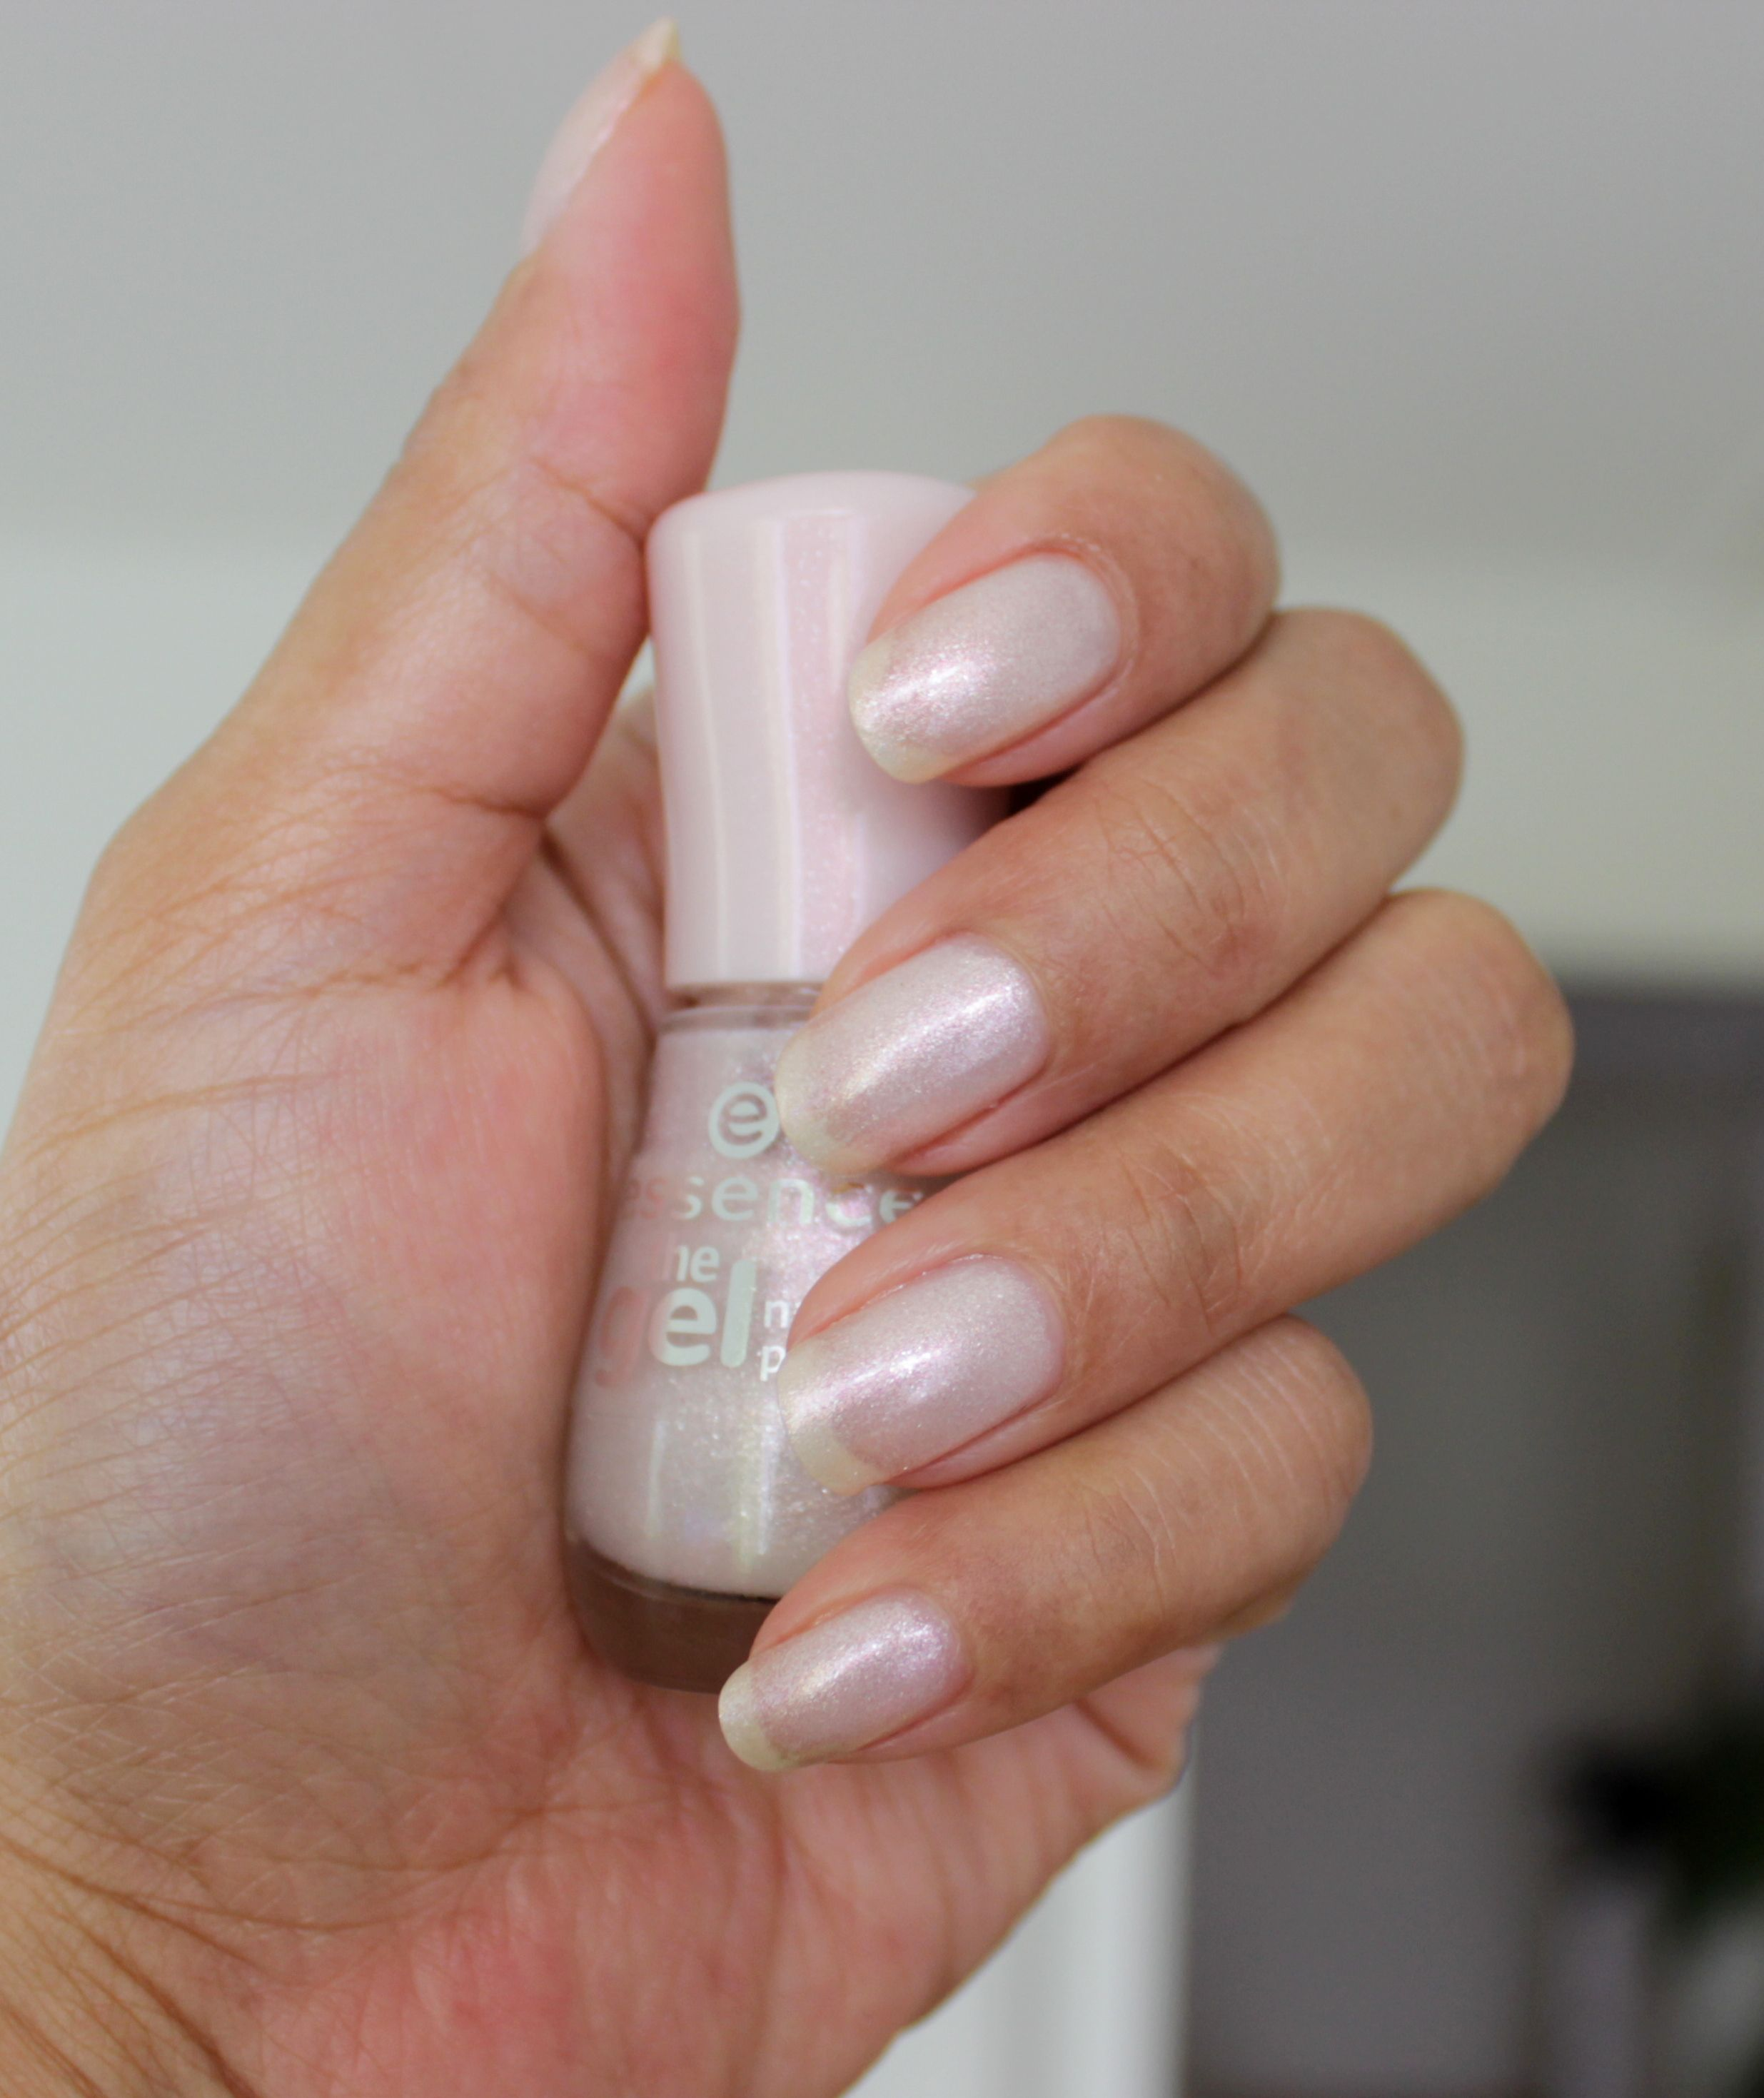 Essence The Gel Nails Review In 2020